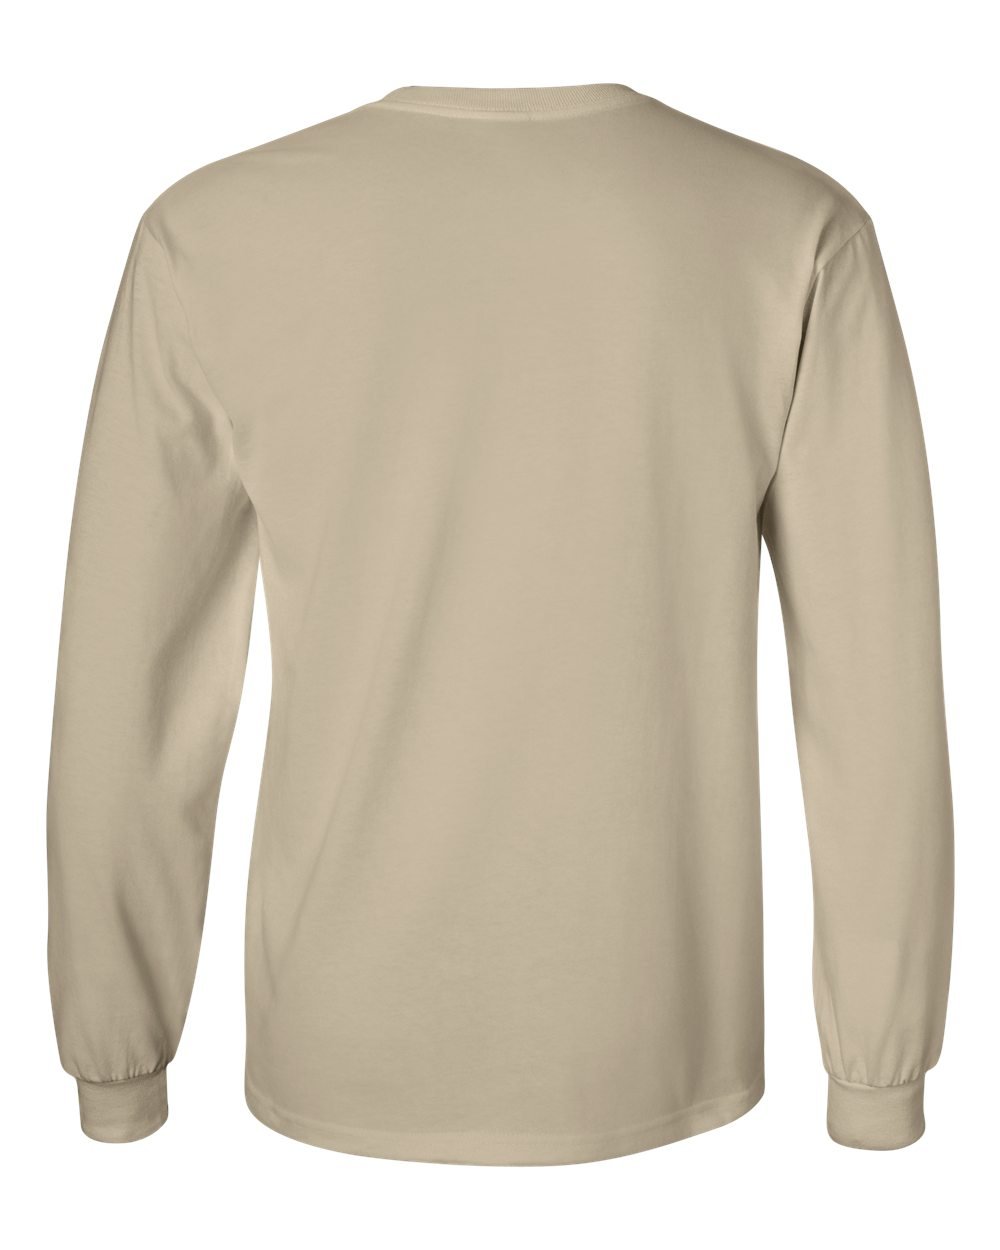 Gildan-Men-039-s-Ultra-Cotton-6-oz-Long-Sleeve-T-Shirt-G240-S-5XL thumbnail 96